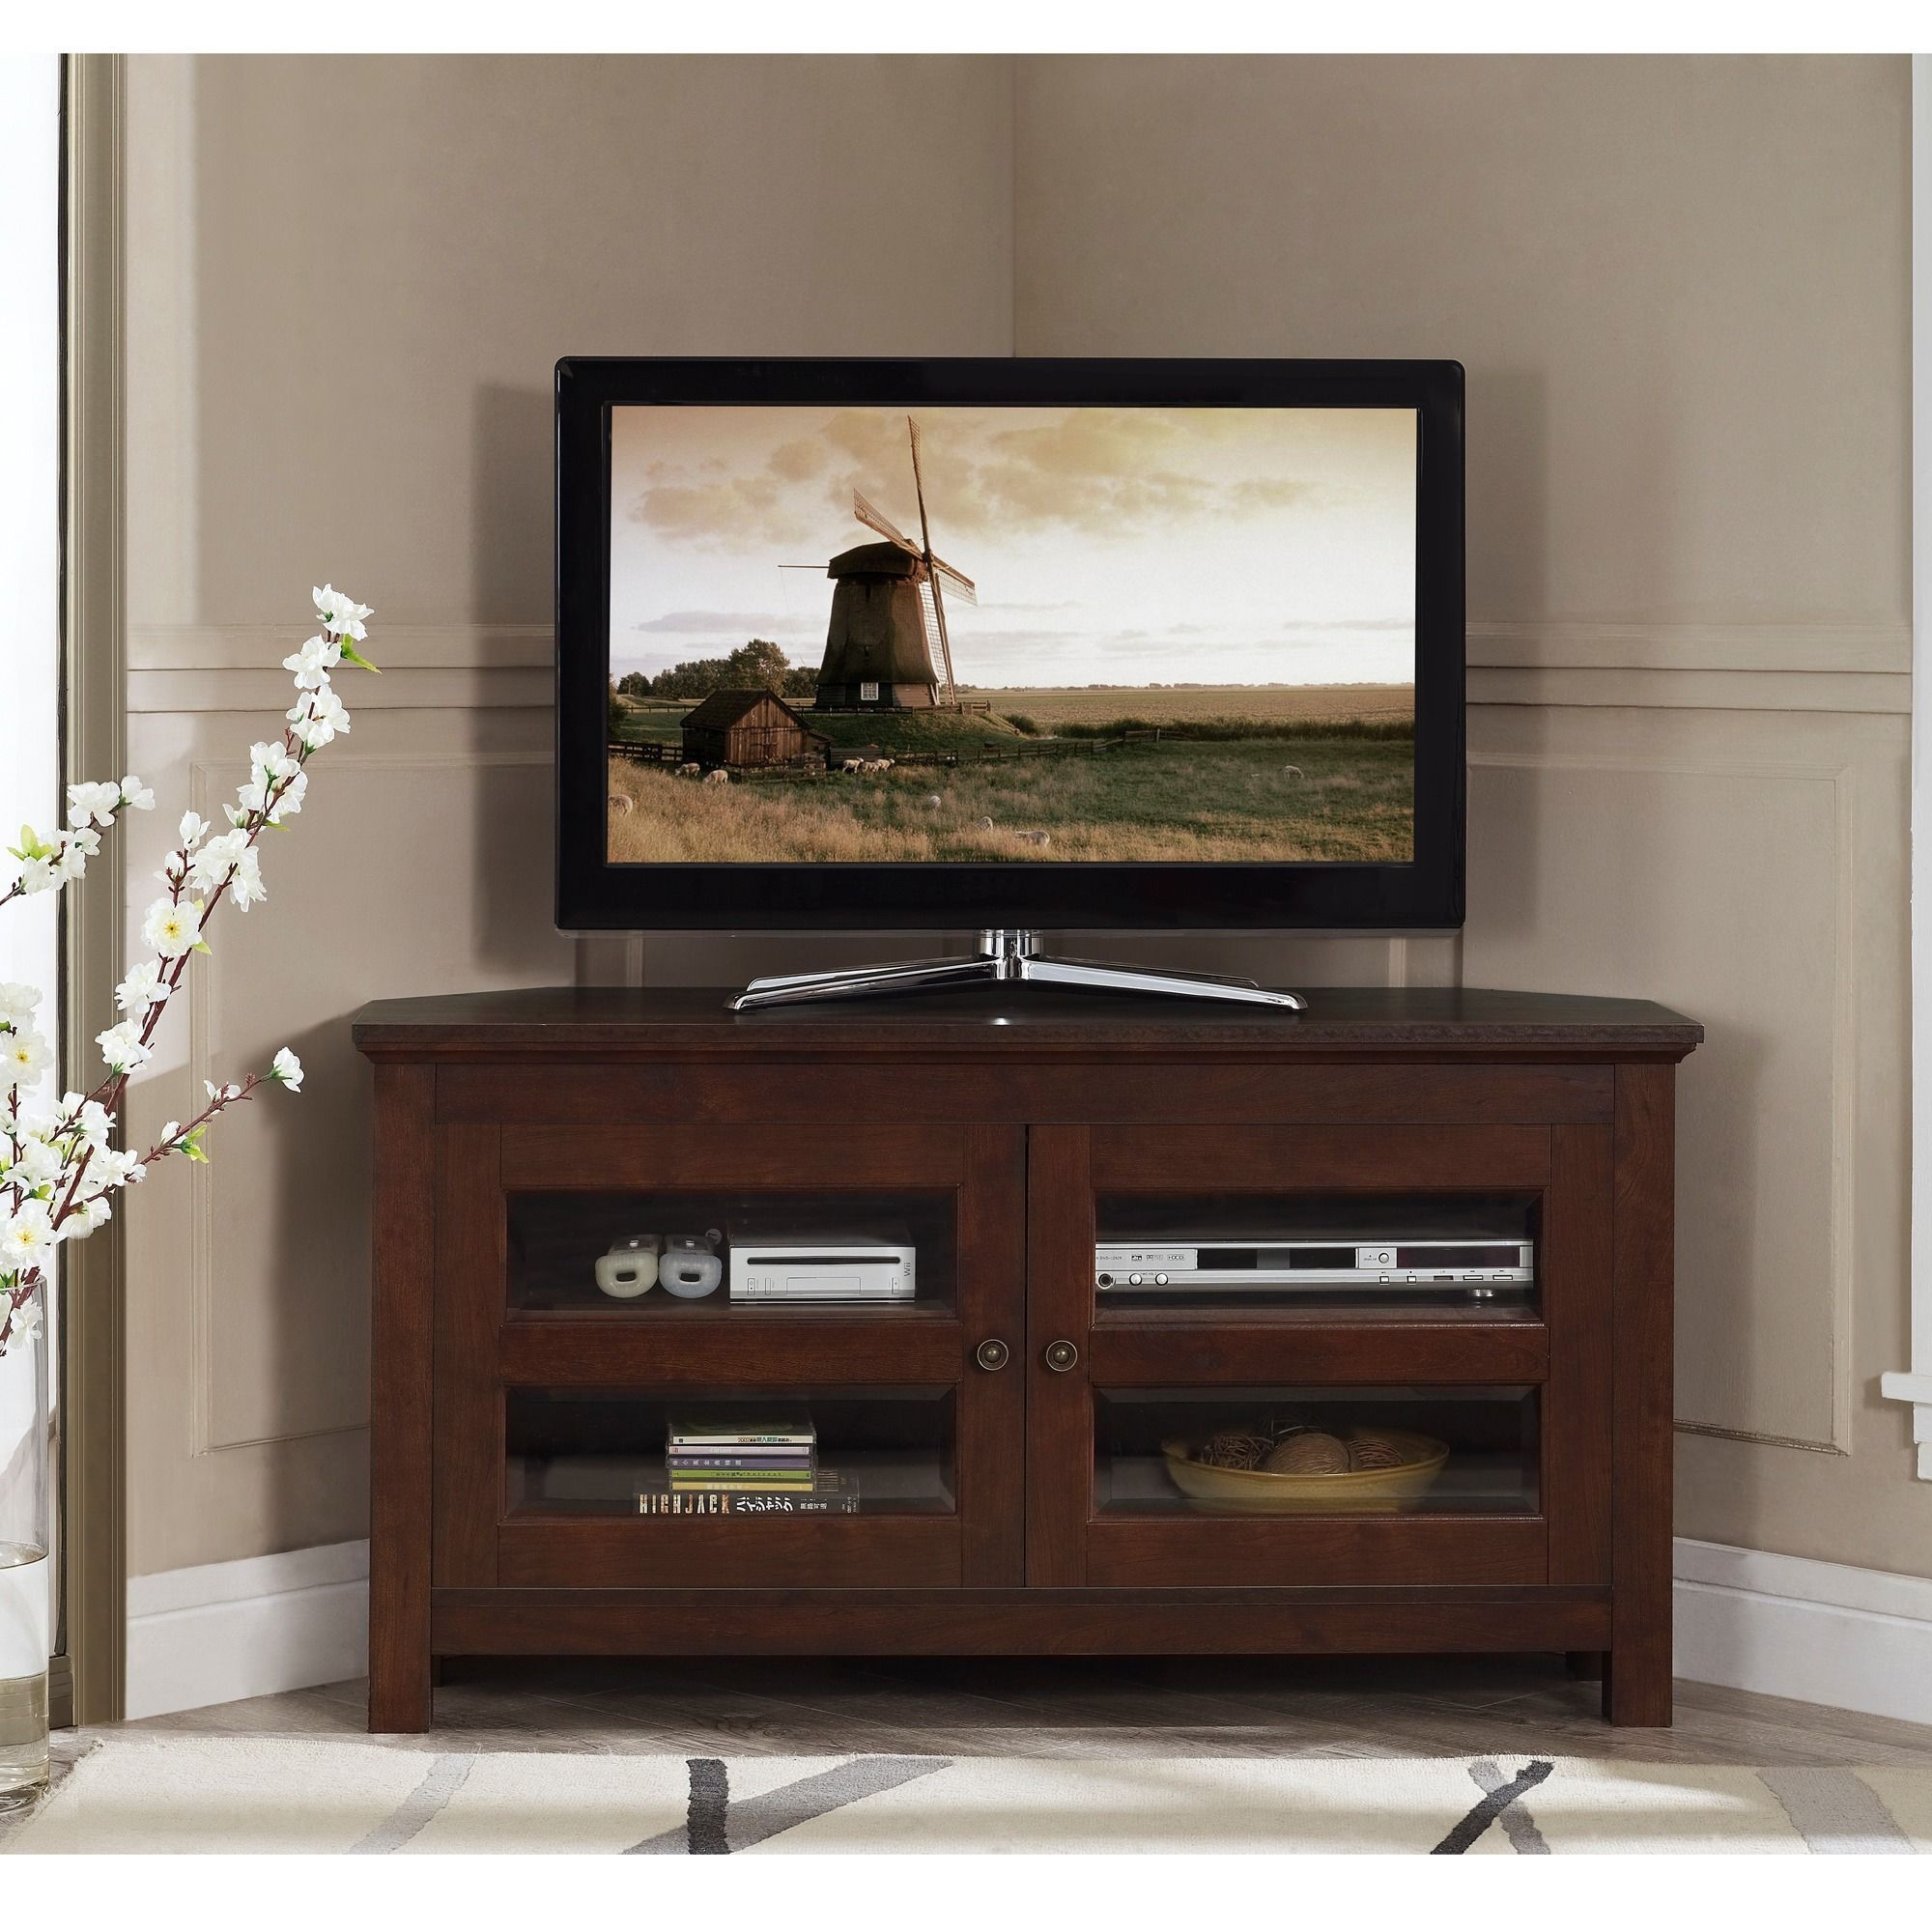 Make A Special Place For Your Television And Entertainment